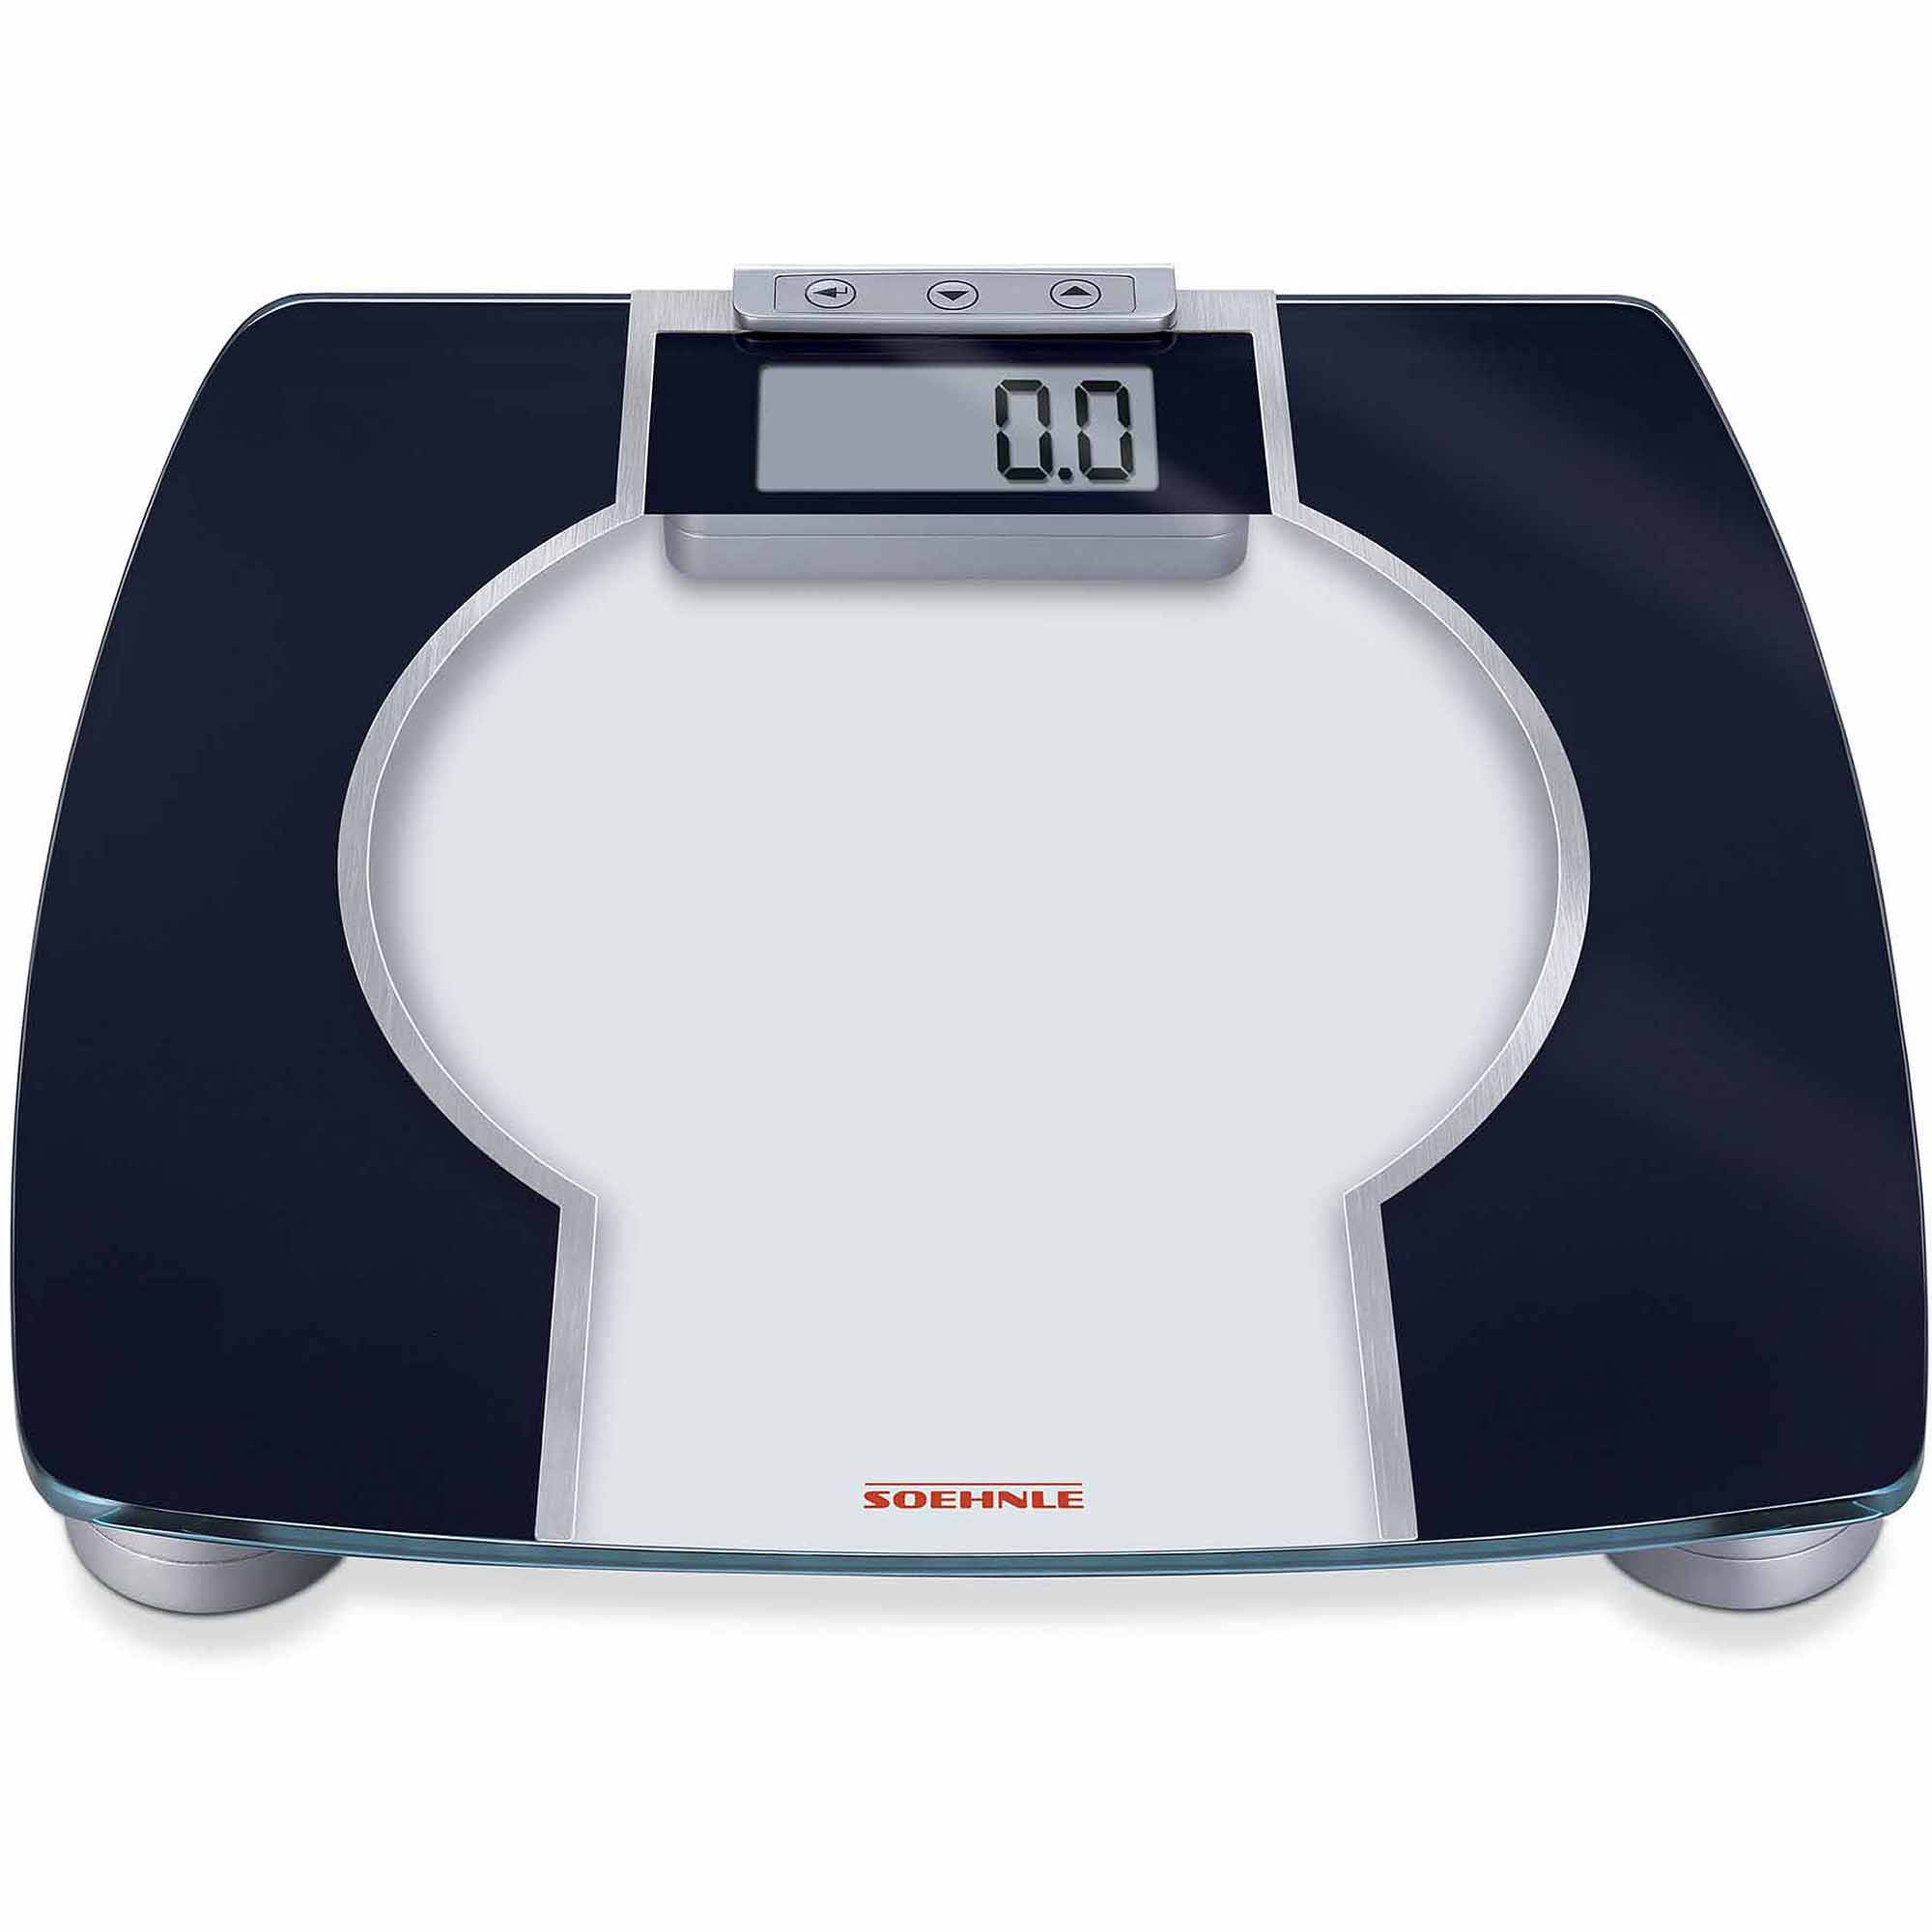 Soehnle BODY CONTROL CONTOUR F 3 Precision Digital Analytic BMI Scale, 330 lb Capacity, Anthracite